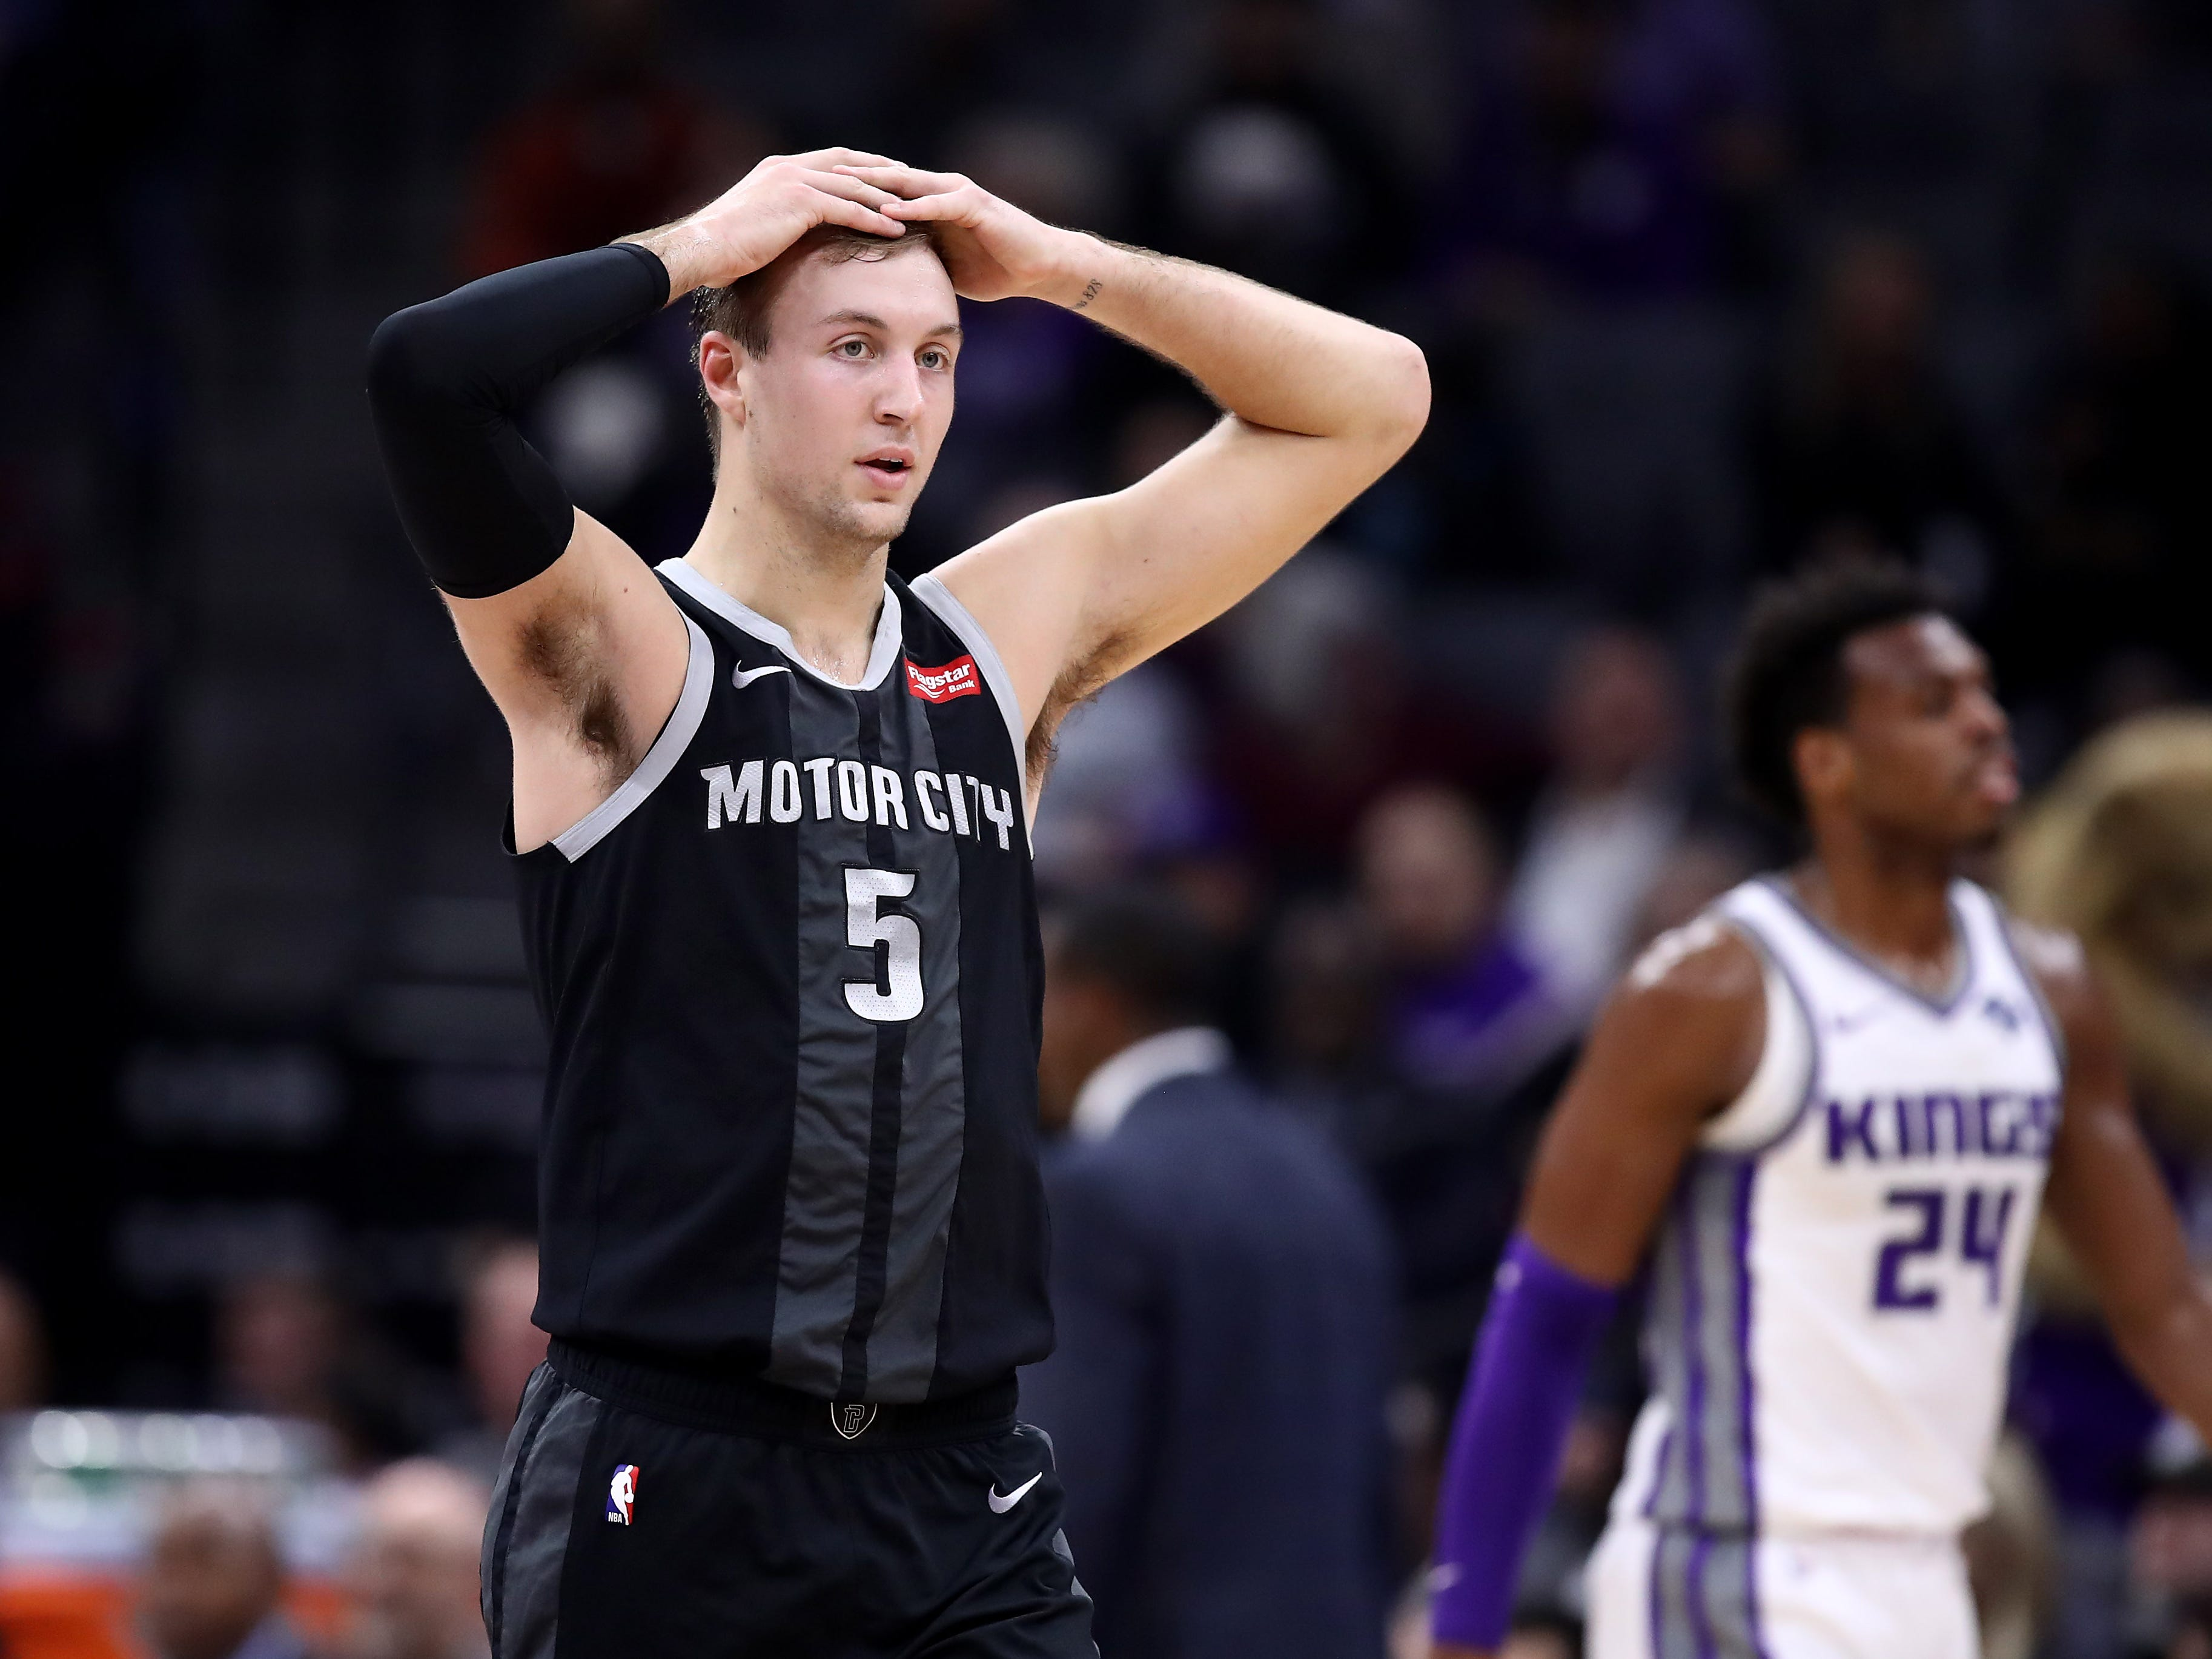 Luke Kennard #5 of the Detroit Pistons walks back down court with his hands on his head during their game against the Sacramento Kings at Golden 1 Center on January 10, 2019 in Sacramento, California.